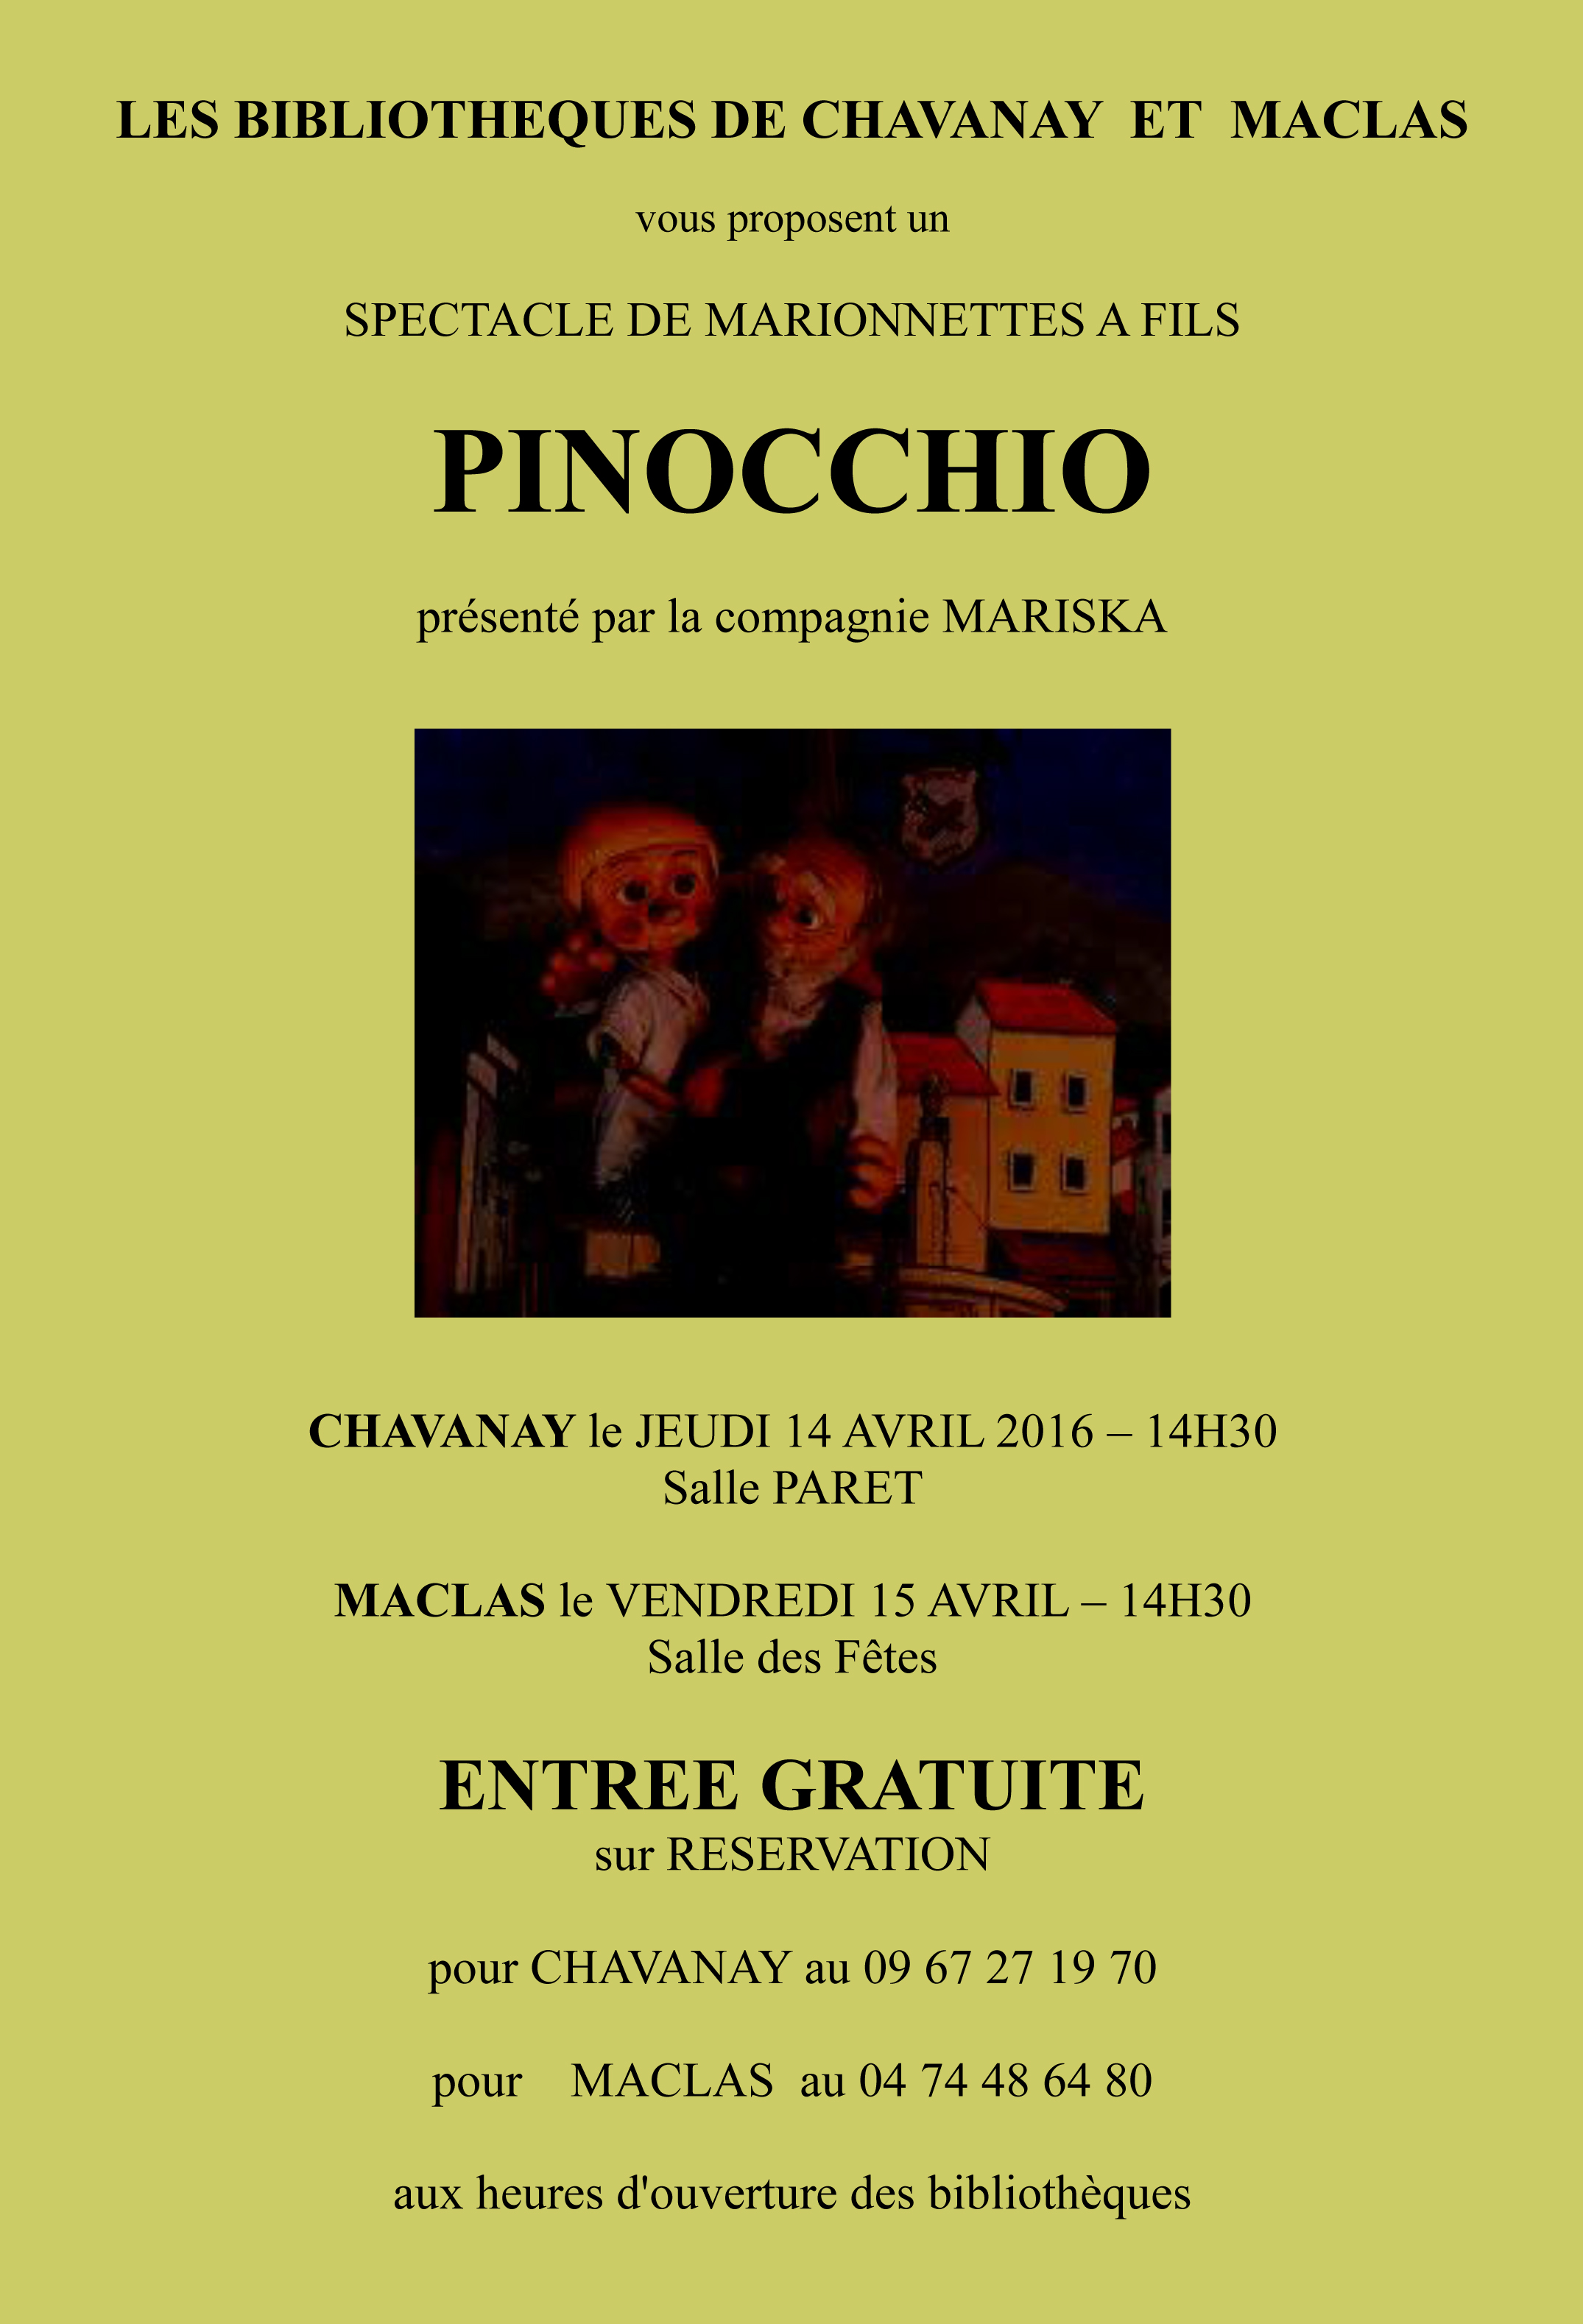 afffiche spectacle pinocchio